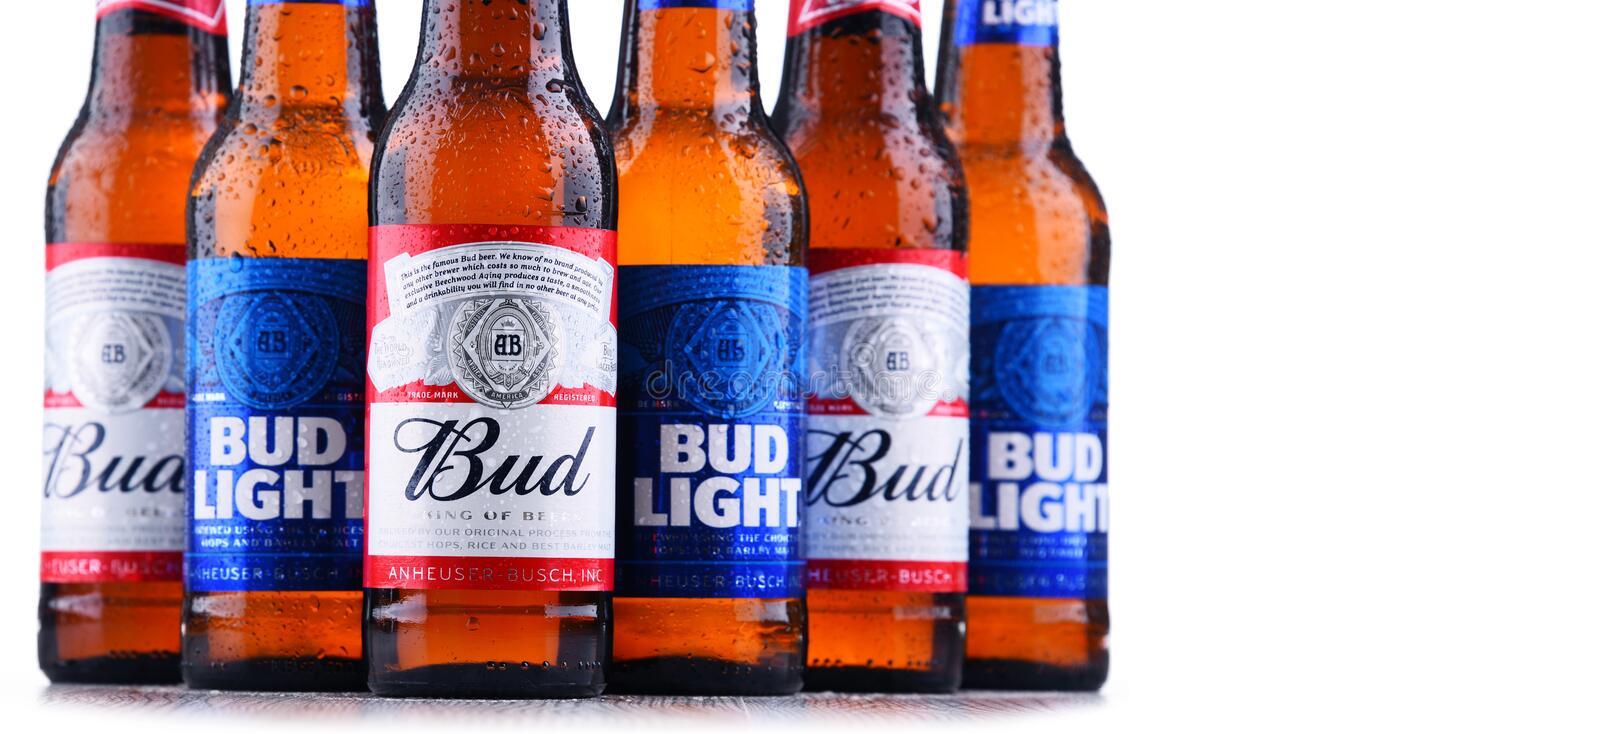 Bottles of Bud and Bud Light beer. POZNAN, POL - MAY 3, 2018: Bottles of Bud and Bud Light, popular American beers, produced by Anheuser-Busch stock image